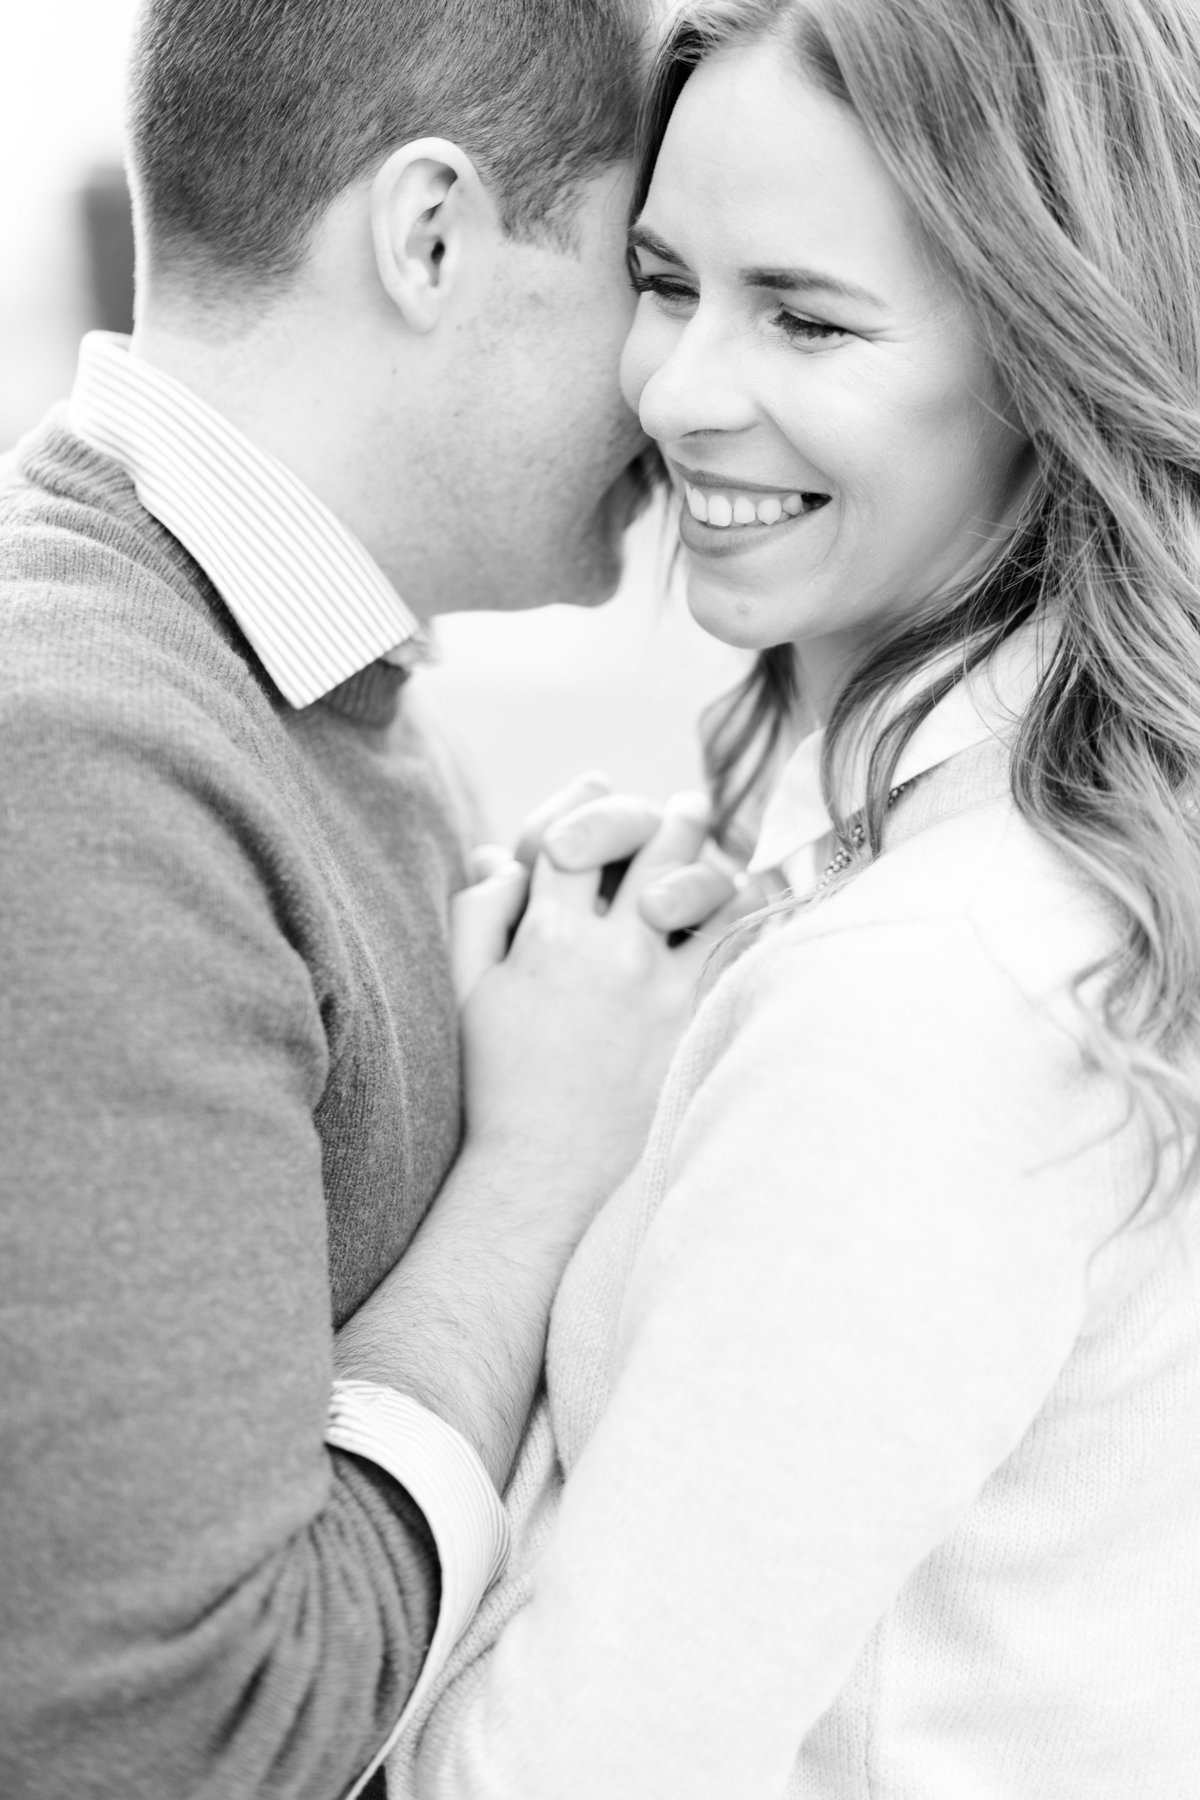 georgetown-university-dc-engagement-kitty-greg-bethanne-arthur-photography-photos-79